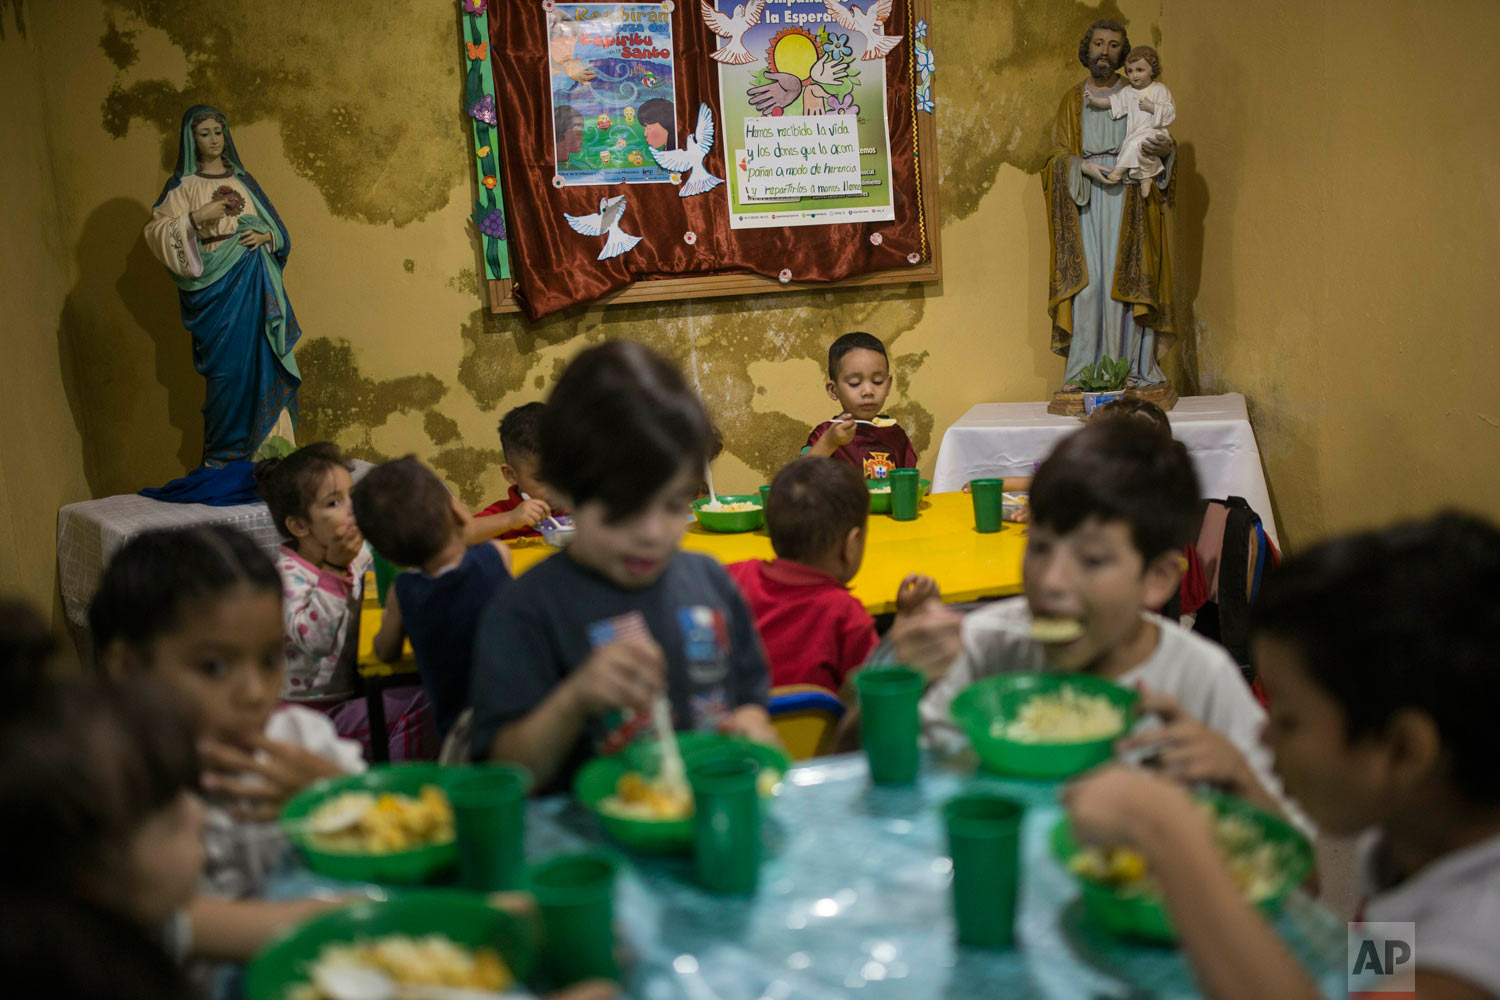 Children have lunch in San Antonio de Padua soup kitchen in the Petare slum, in Caracas, Venezuela, Feb. 11, 2019. (AP Photo/Rodrigo Abd)